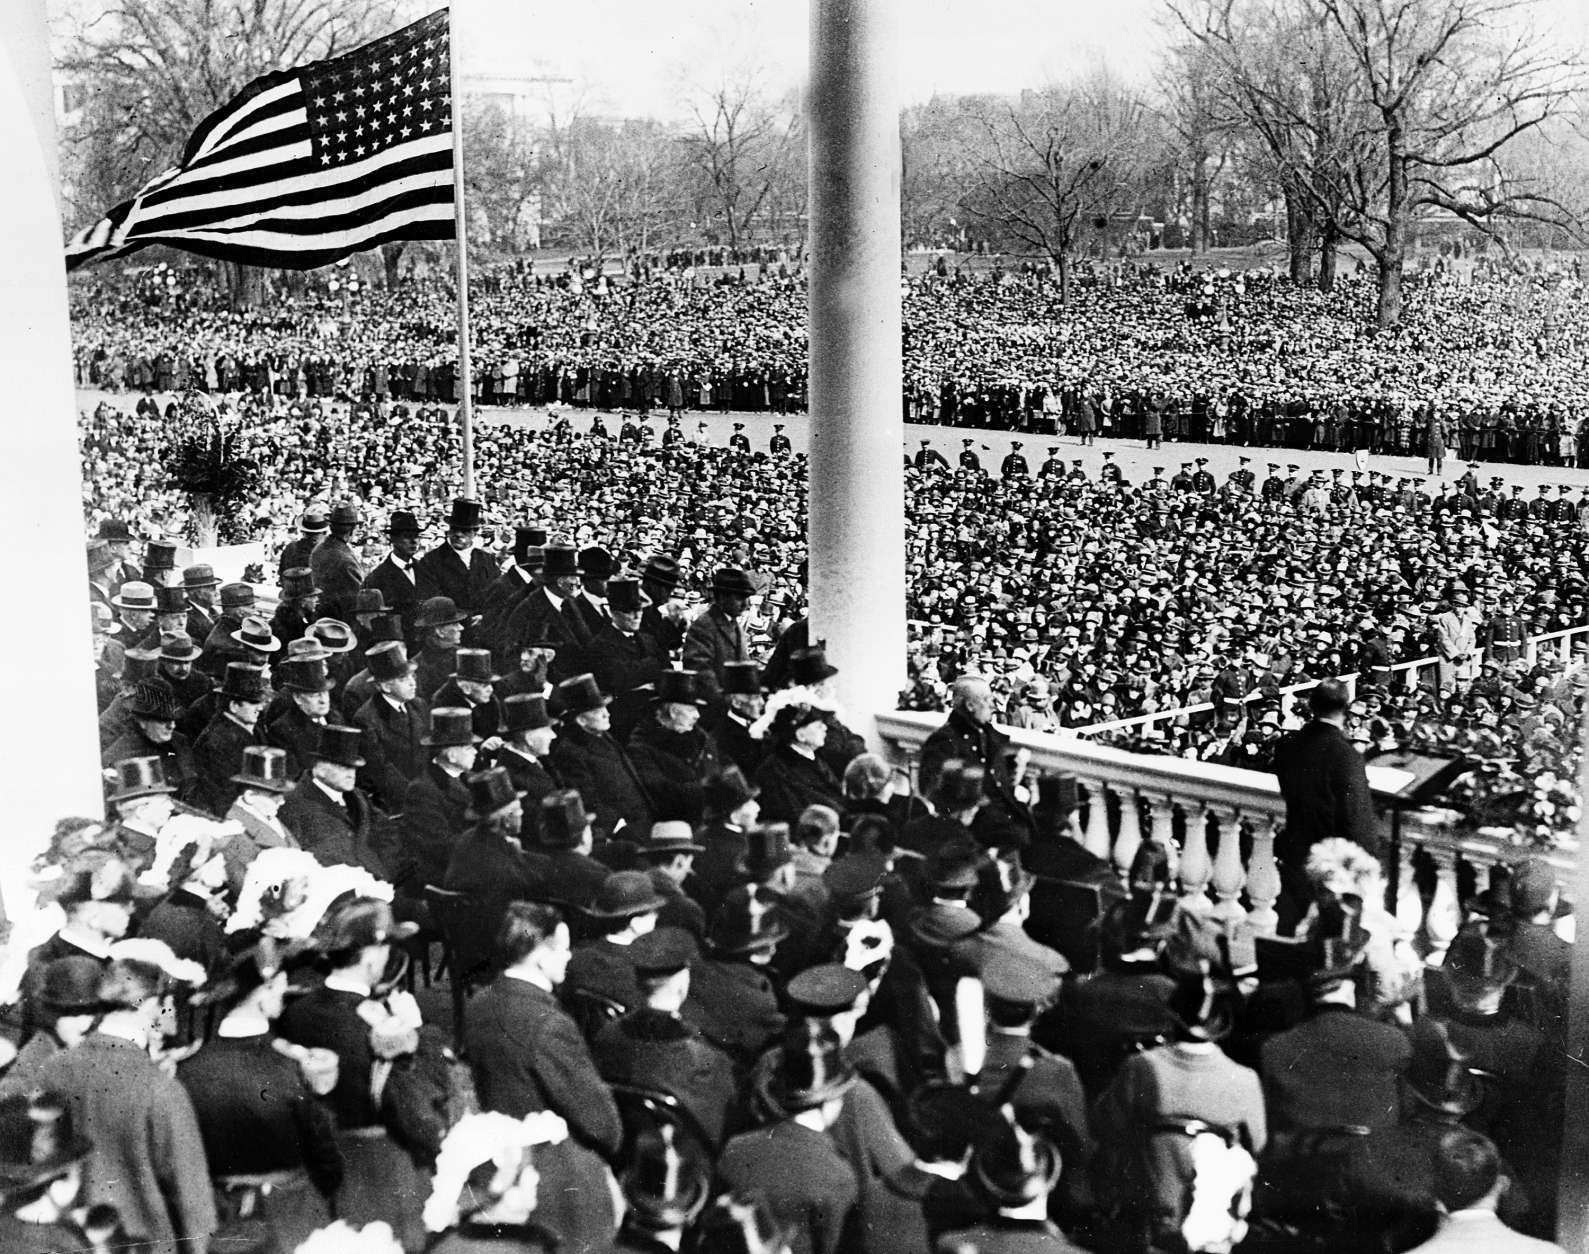 U.S. President Calvin Coolidge, right foreground, delivers his inaugural address after taking the oath of office on the East Portico of the Capitol building in Washington, D.C. on March 4, 1925.  Coolidge was sworn in as the 30th president of the United States.  (AP Photo)